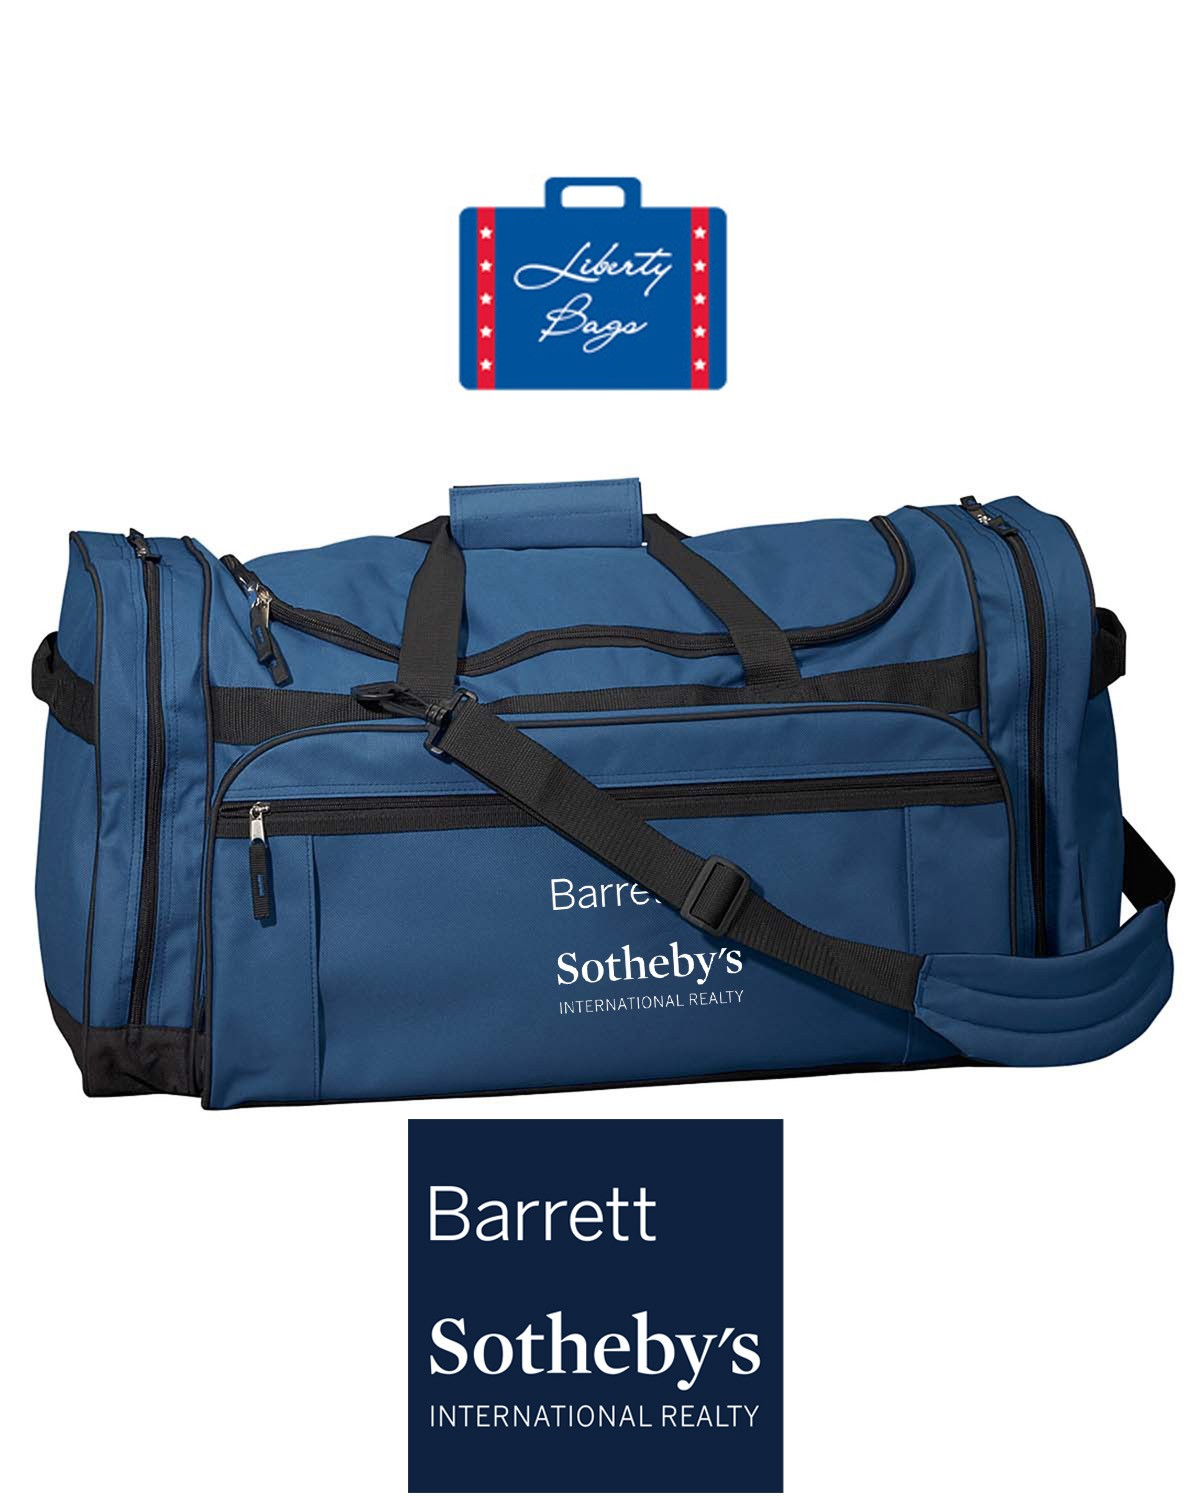 Barrett Sotheby's Liberty Bags Explorer Large Duffel Bag